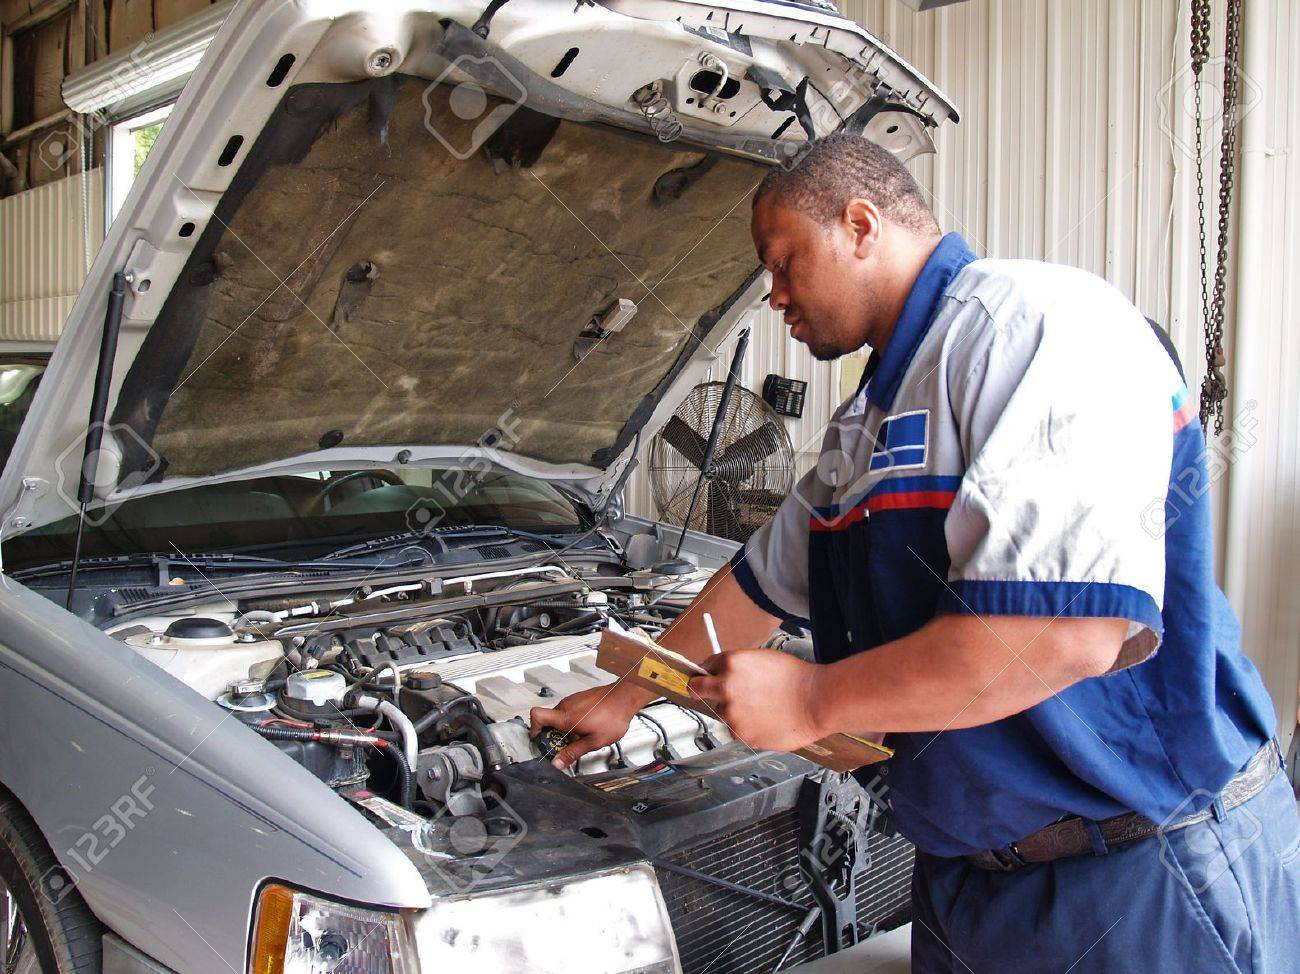 Mechanic Performing a Routine Service Inspection - 7765991